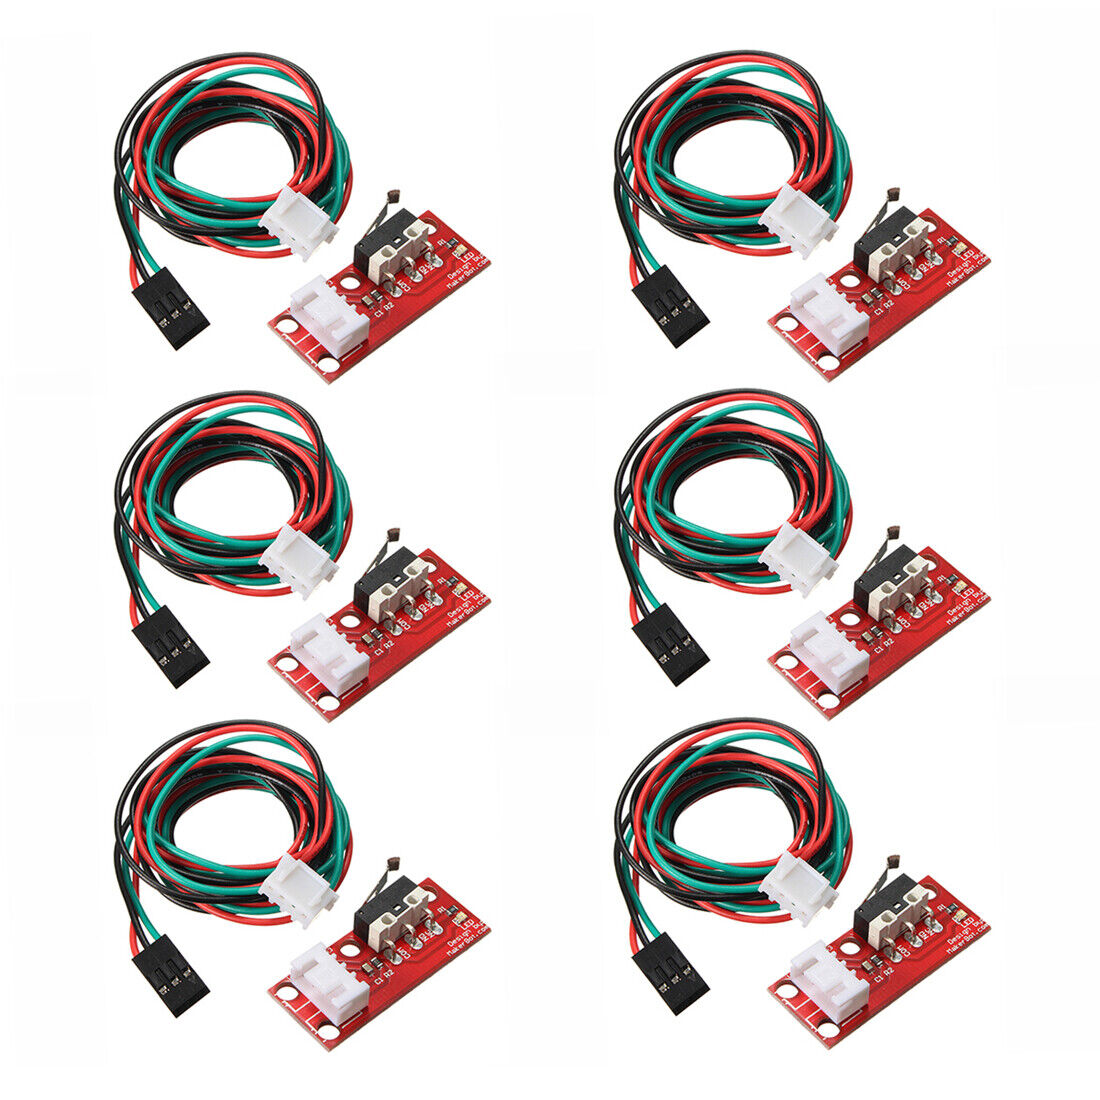 29FB Opto Optical End Stop Limit Switch For CNC RAMPS-1.4 3D Printer Components